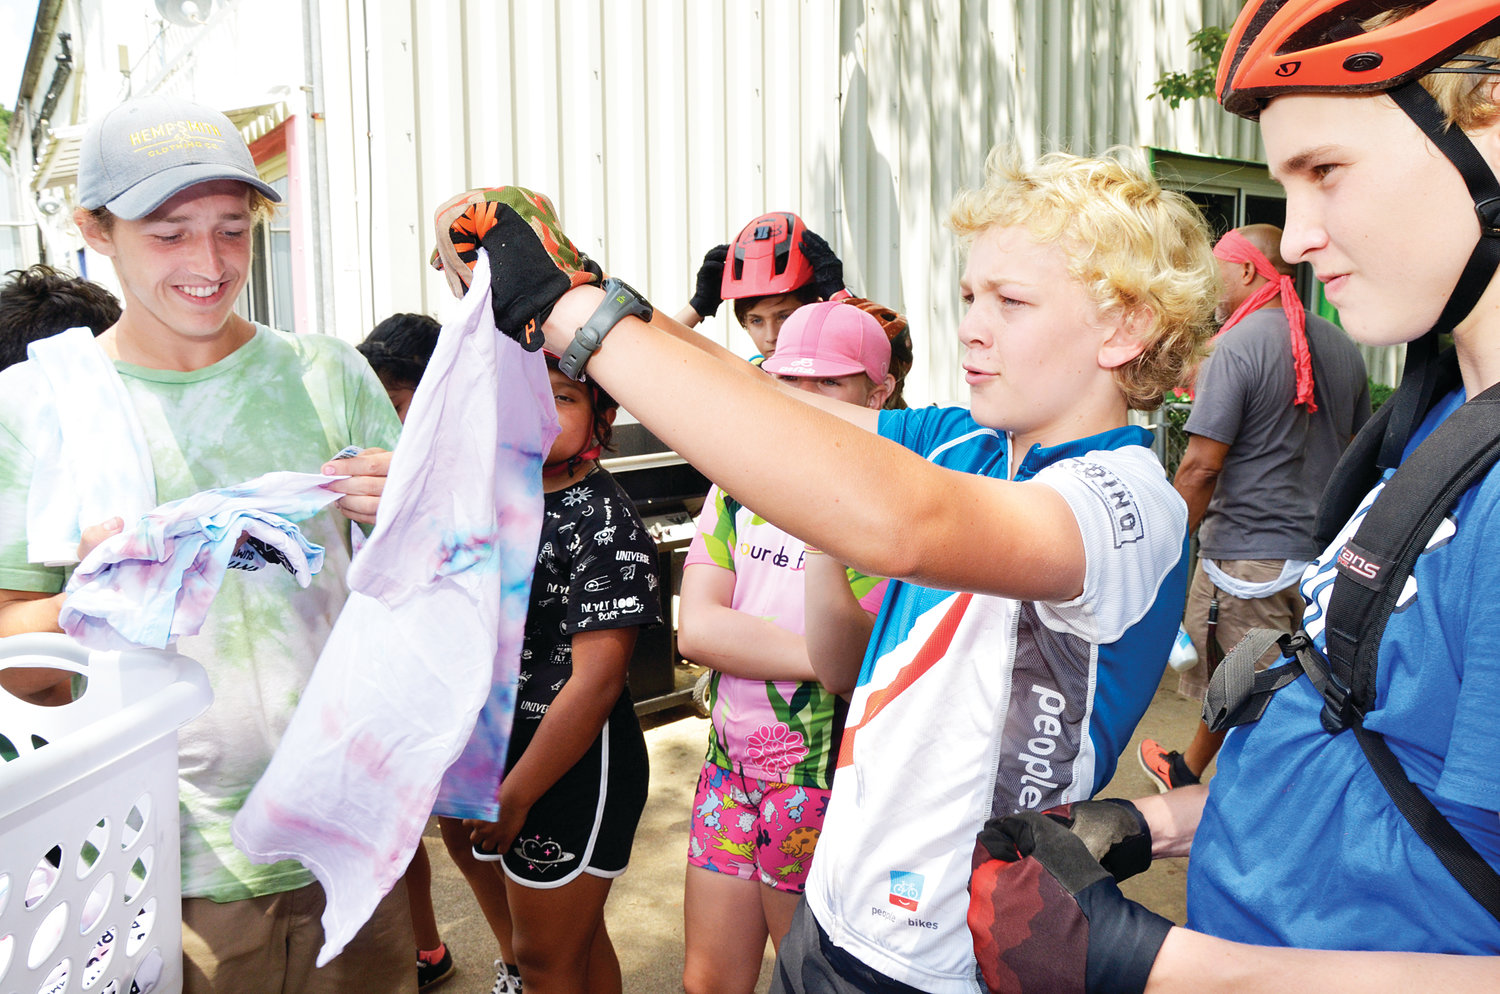 Asher Strauss holds out one of the t-shirts for the Bikes and Barnyards events given to the campers. The tie-dyed shirts were made by Arlo Estill, owner of Hempsmith, a Pittsboro hemp clothing company.